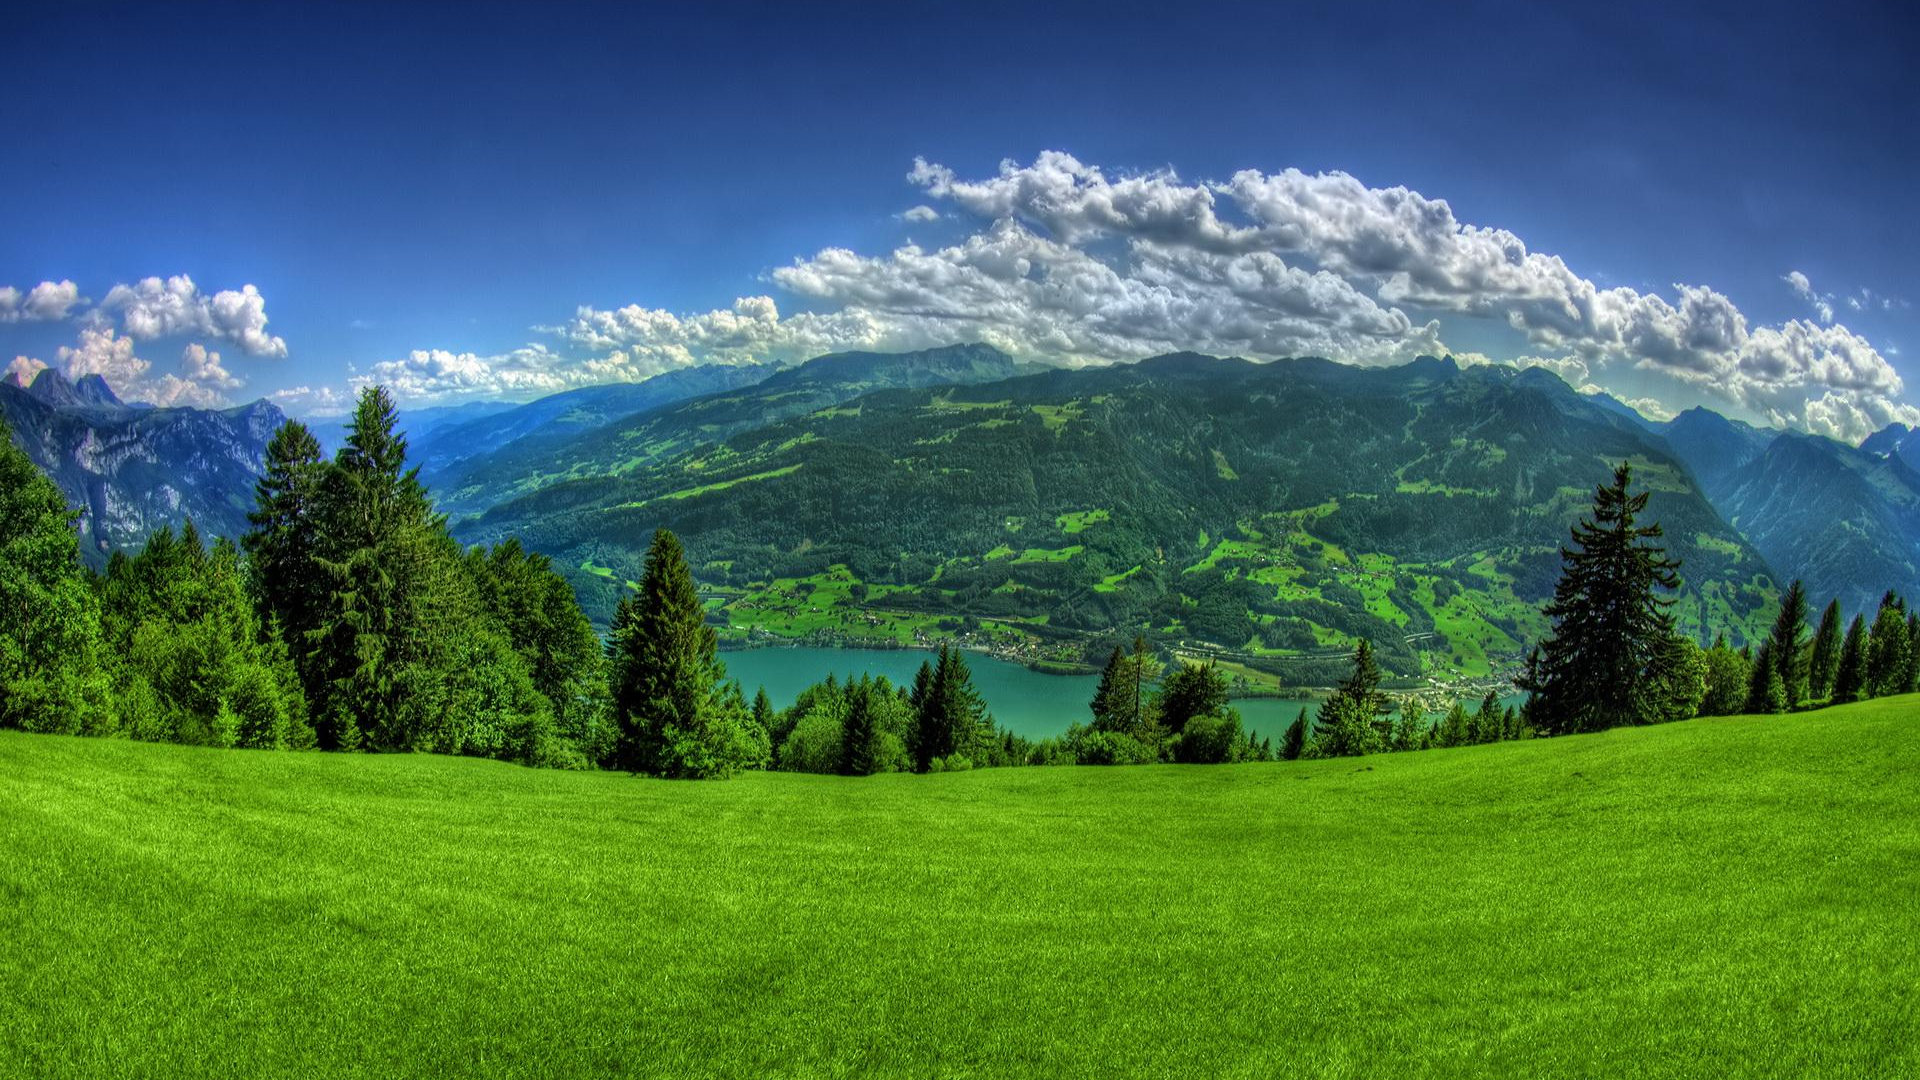 Free Download 70 Best Nature Wide Screen Full Hd Wallpapers 1920x1200 For Your Desktop Mobile Tablet Explore 43 Nature Wallpapers Full Screen Nature Wallpapers For Desktop Beautiful Wallpapers For